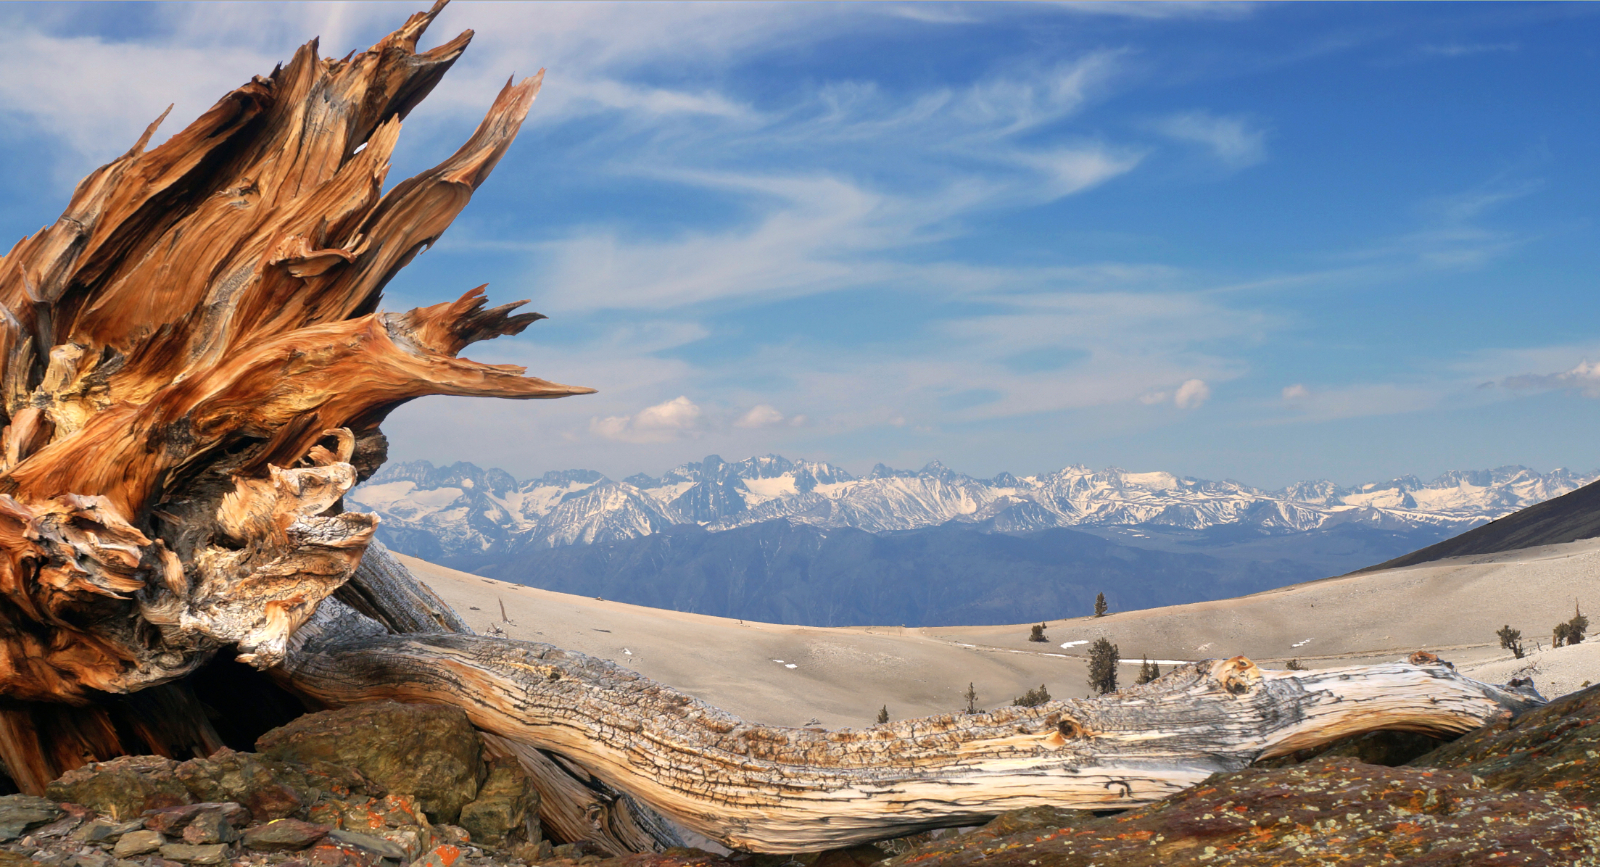 View from a bristlecone forest at the crest of the White Mountains, looking across the Owens Valley to the snow covered Sierra Nevada with the Palisades showing prominently.